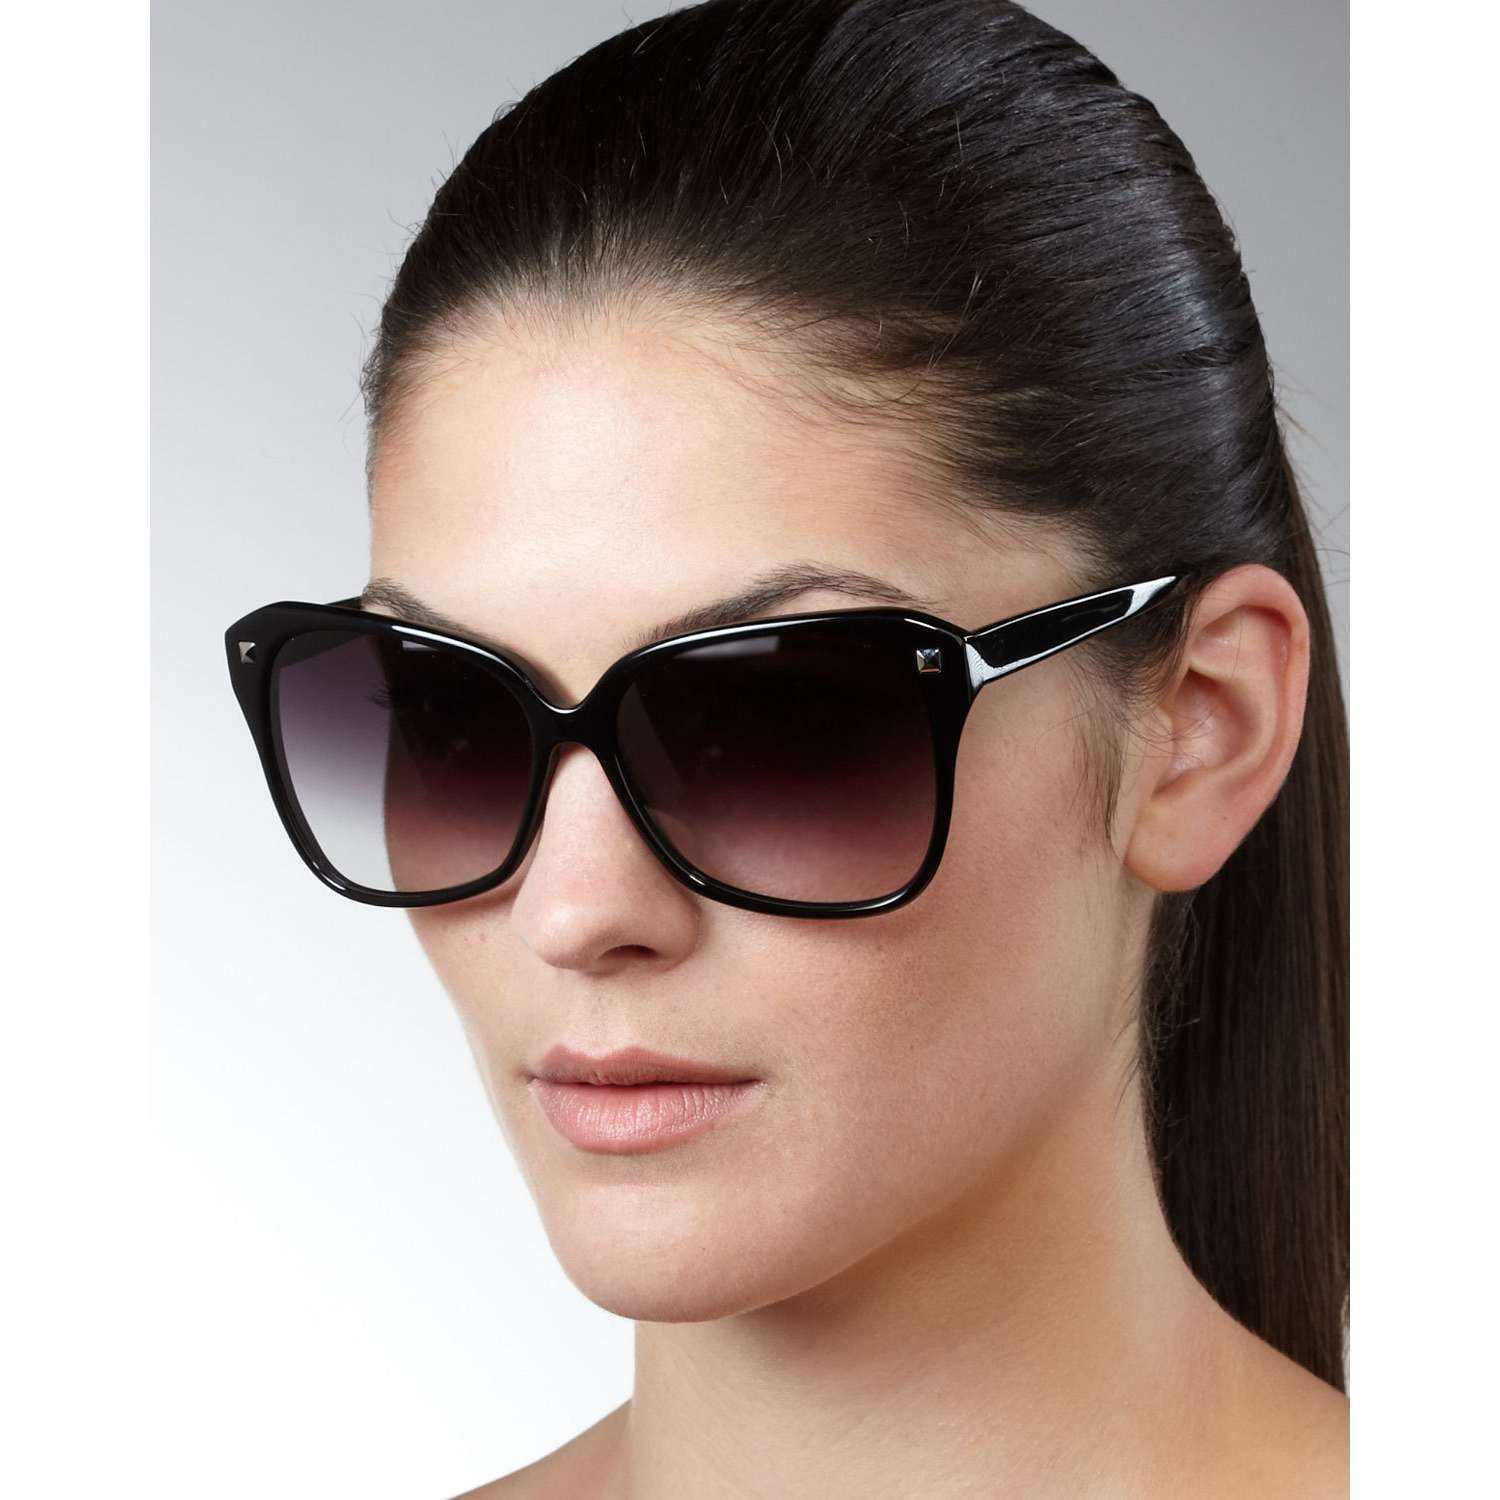 Best Womens Sunglasses for Small Face stepbystep